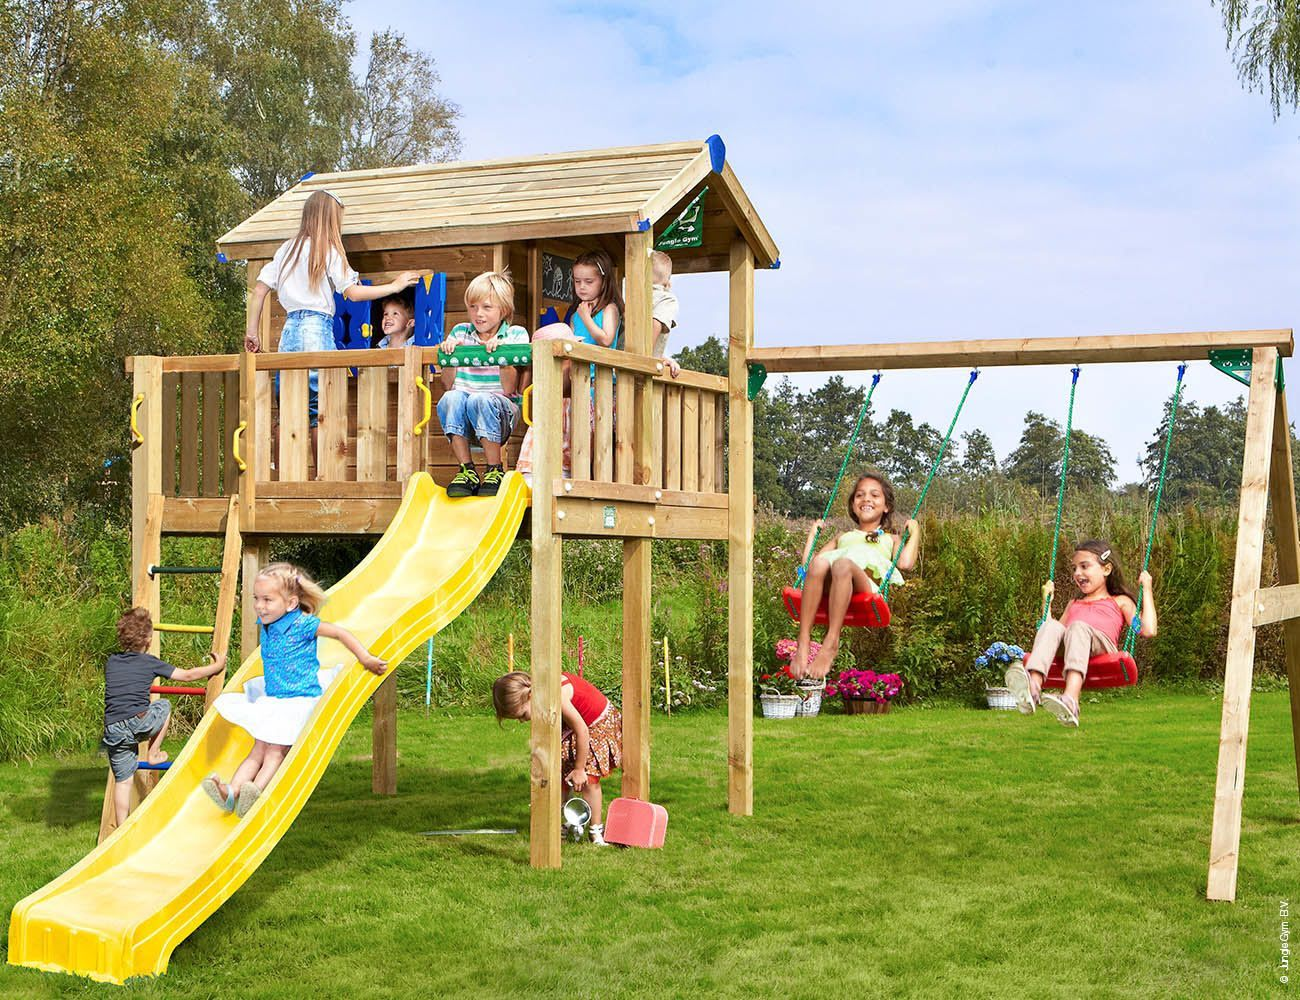 Children S Swing Sets Playhouse Xl 2 Swing In 2020 Play Houses Swing Sets For Kids Childrens Swings